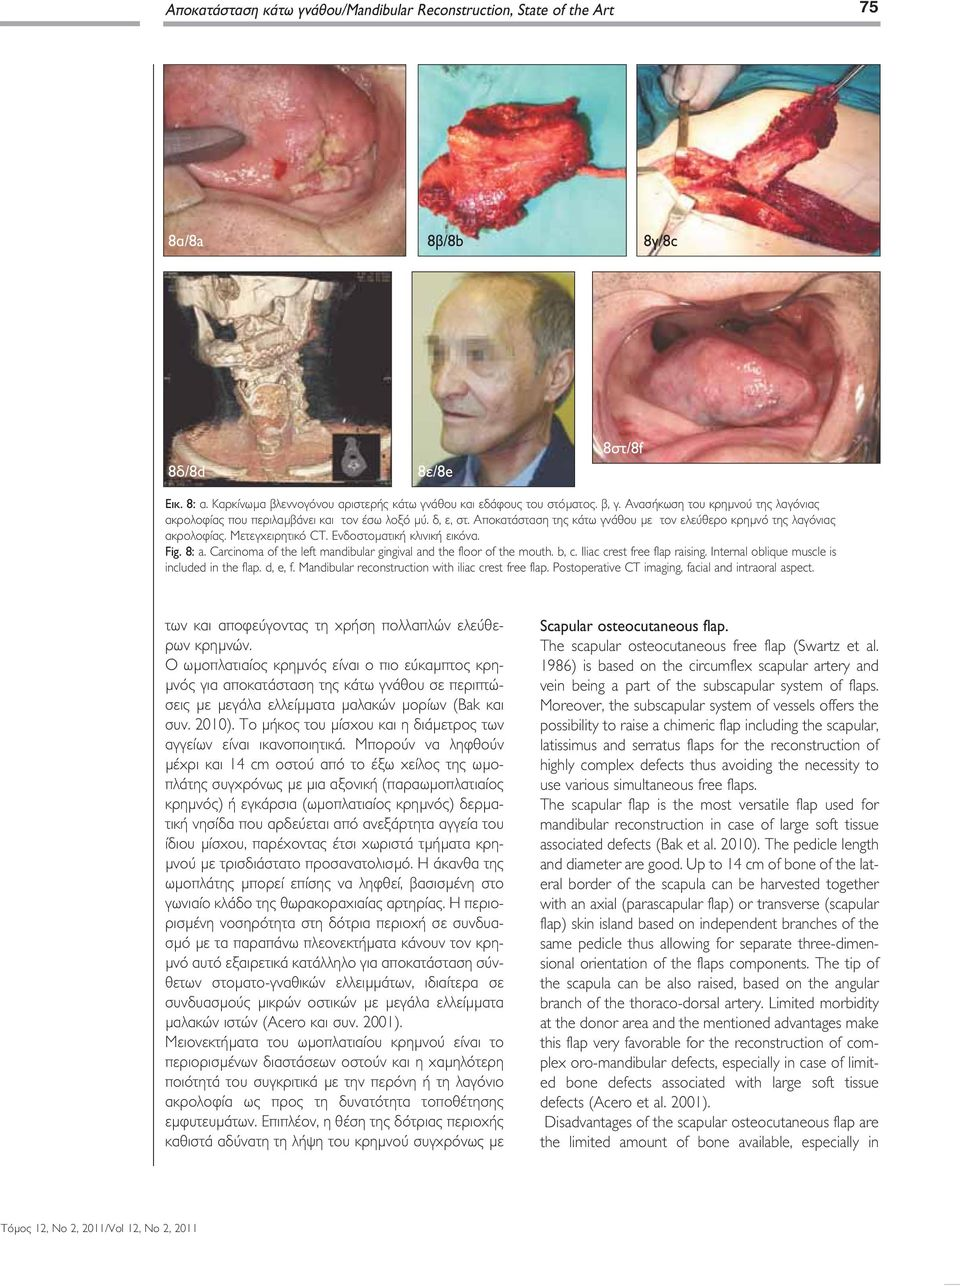 Ενδοστοματική κλινική εικόνα. Fig. 8: a. Carcinoma of the left mandibular gingival and the floor of the mouth. b, c. Iliac crest free flap raising. Internal oblique muscle is included in the flap.